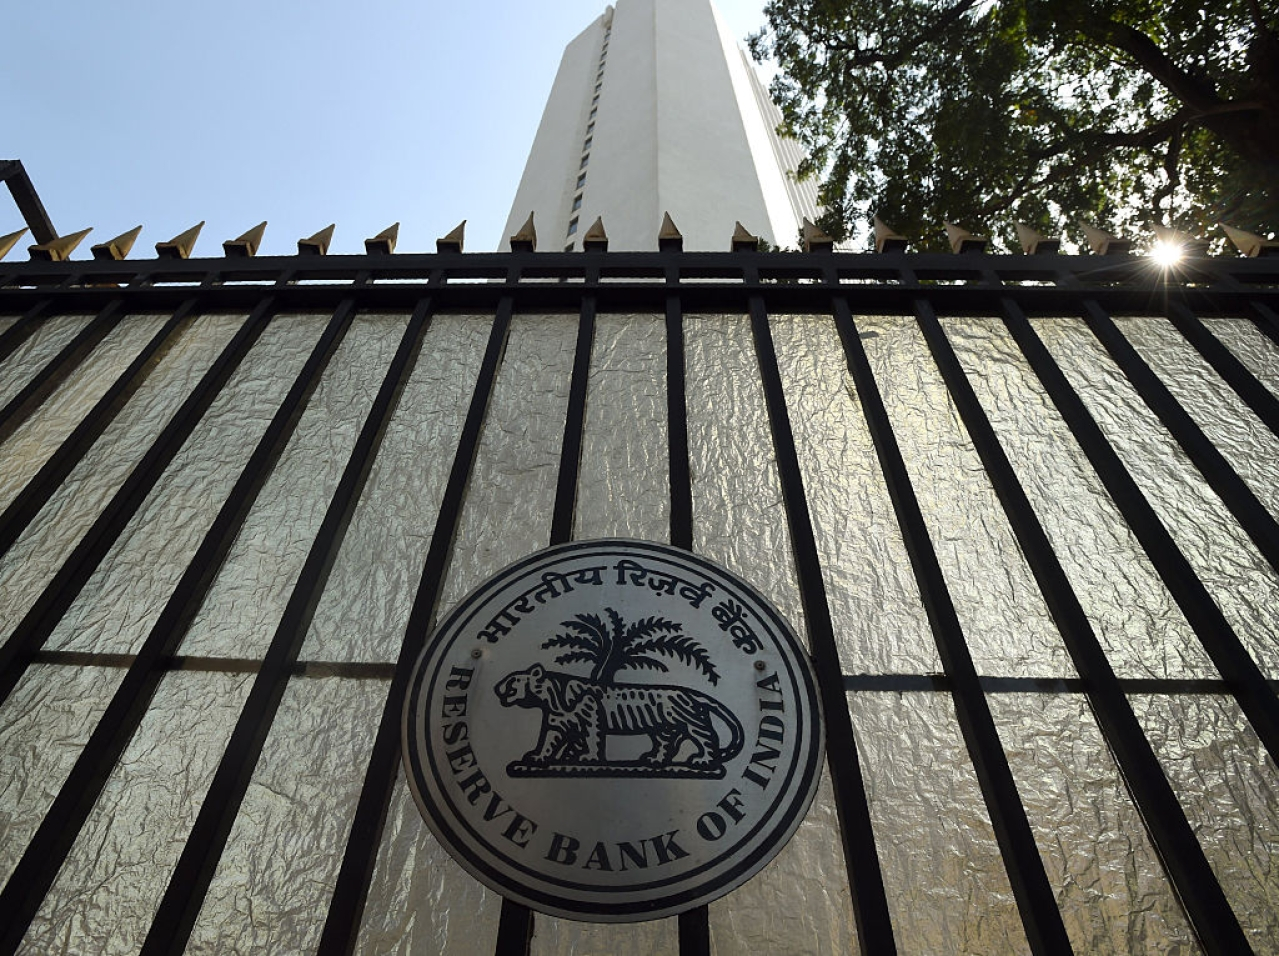 The RBI headquarters in Mumbai. (GettyImages)